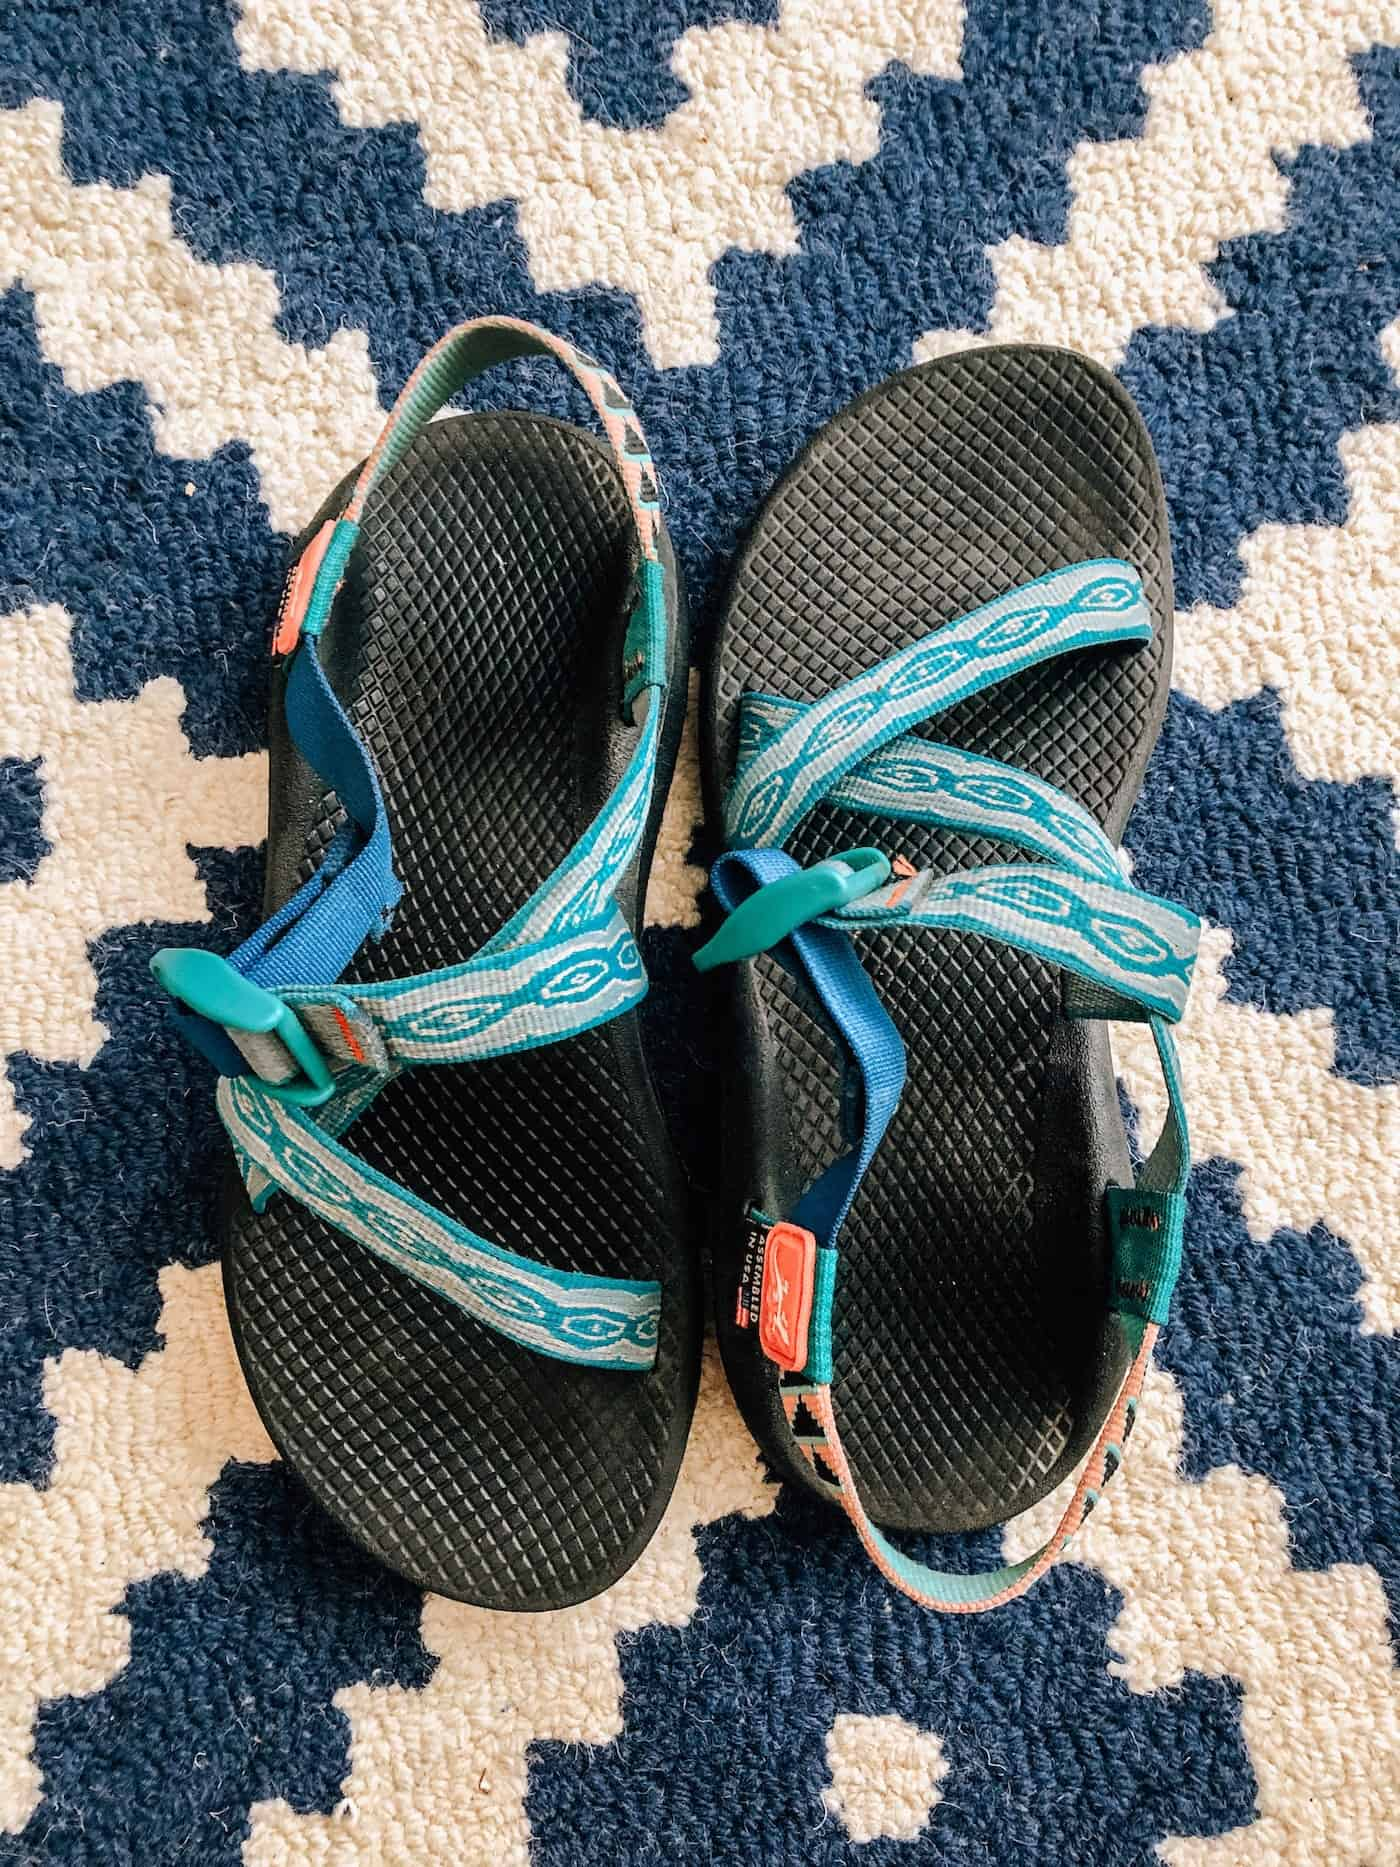 my favorite summer shoes - Chacos